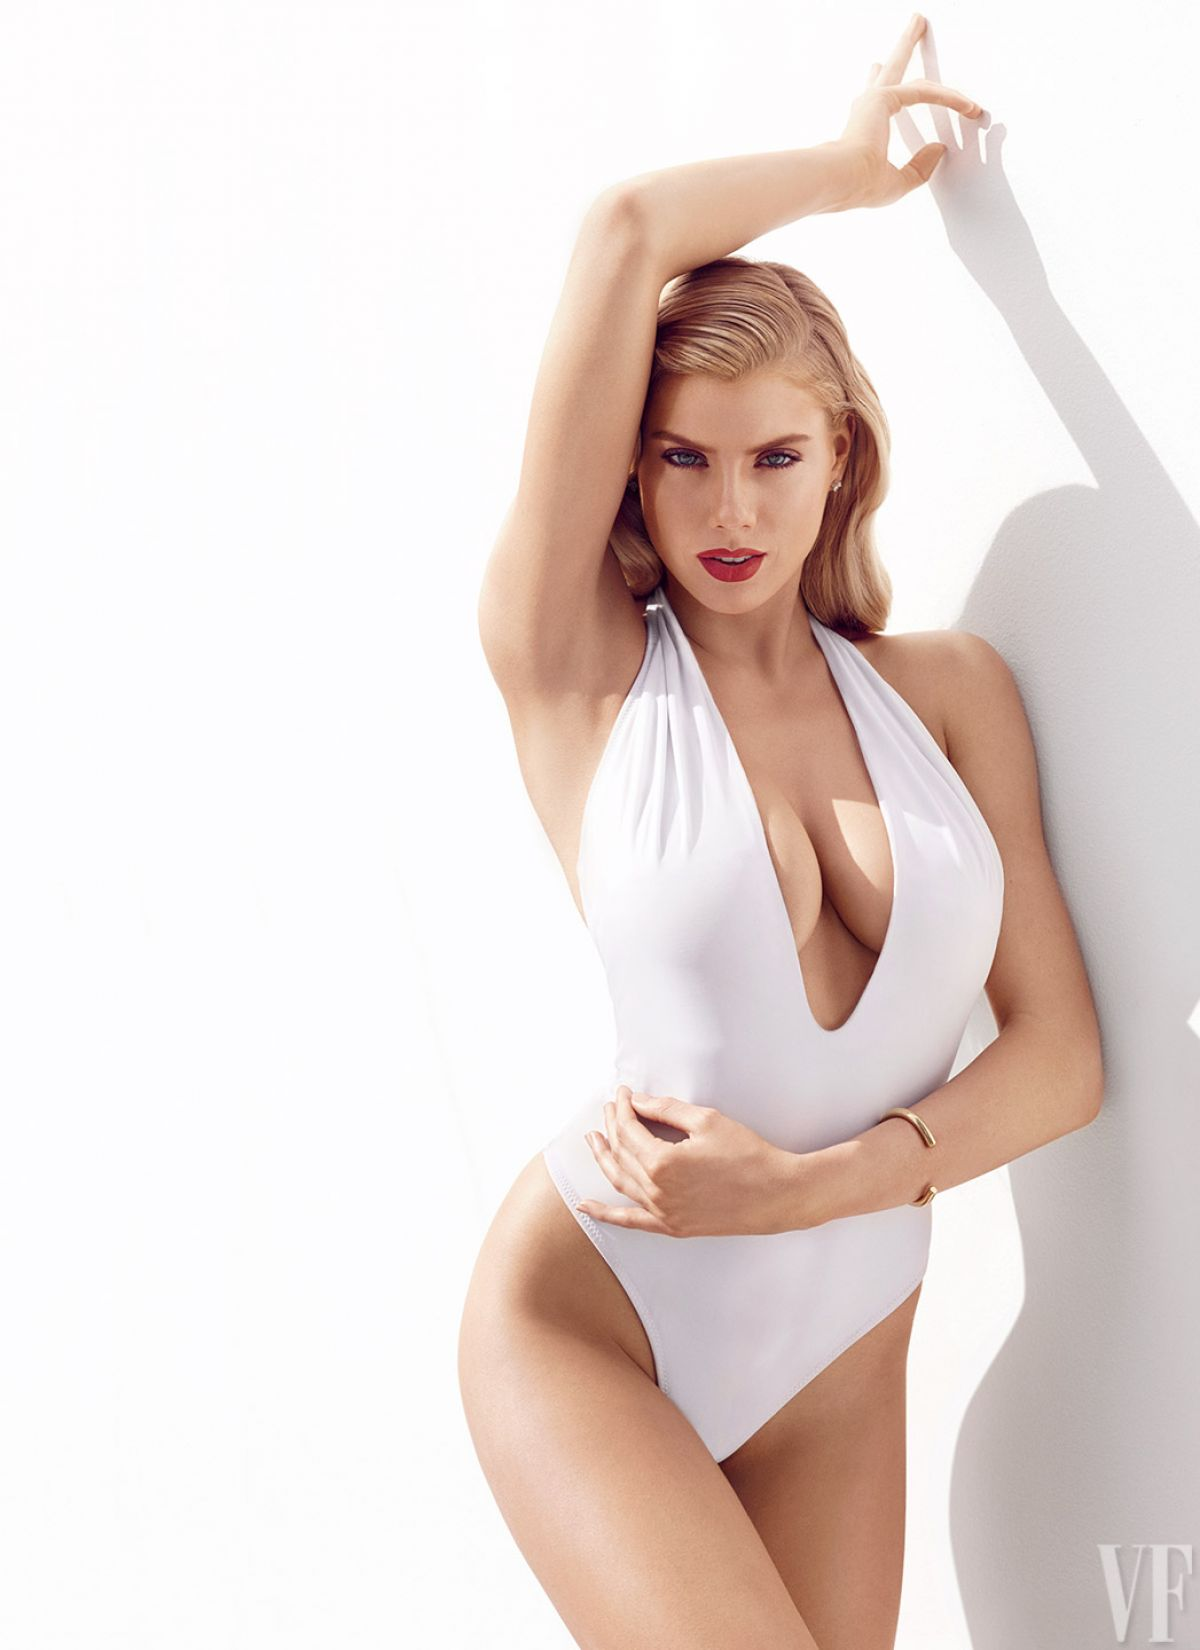 CHARLOTTE MCKINNEY for Vanity Fair Magazine